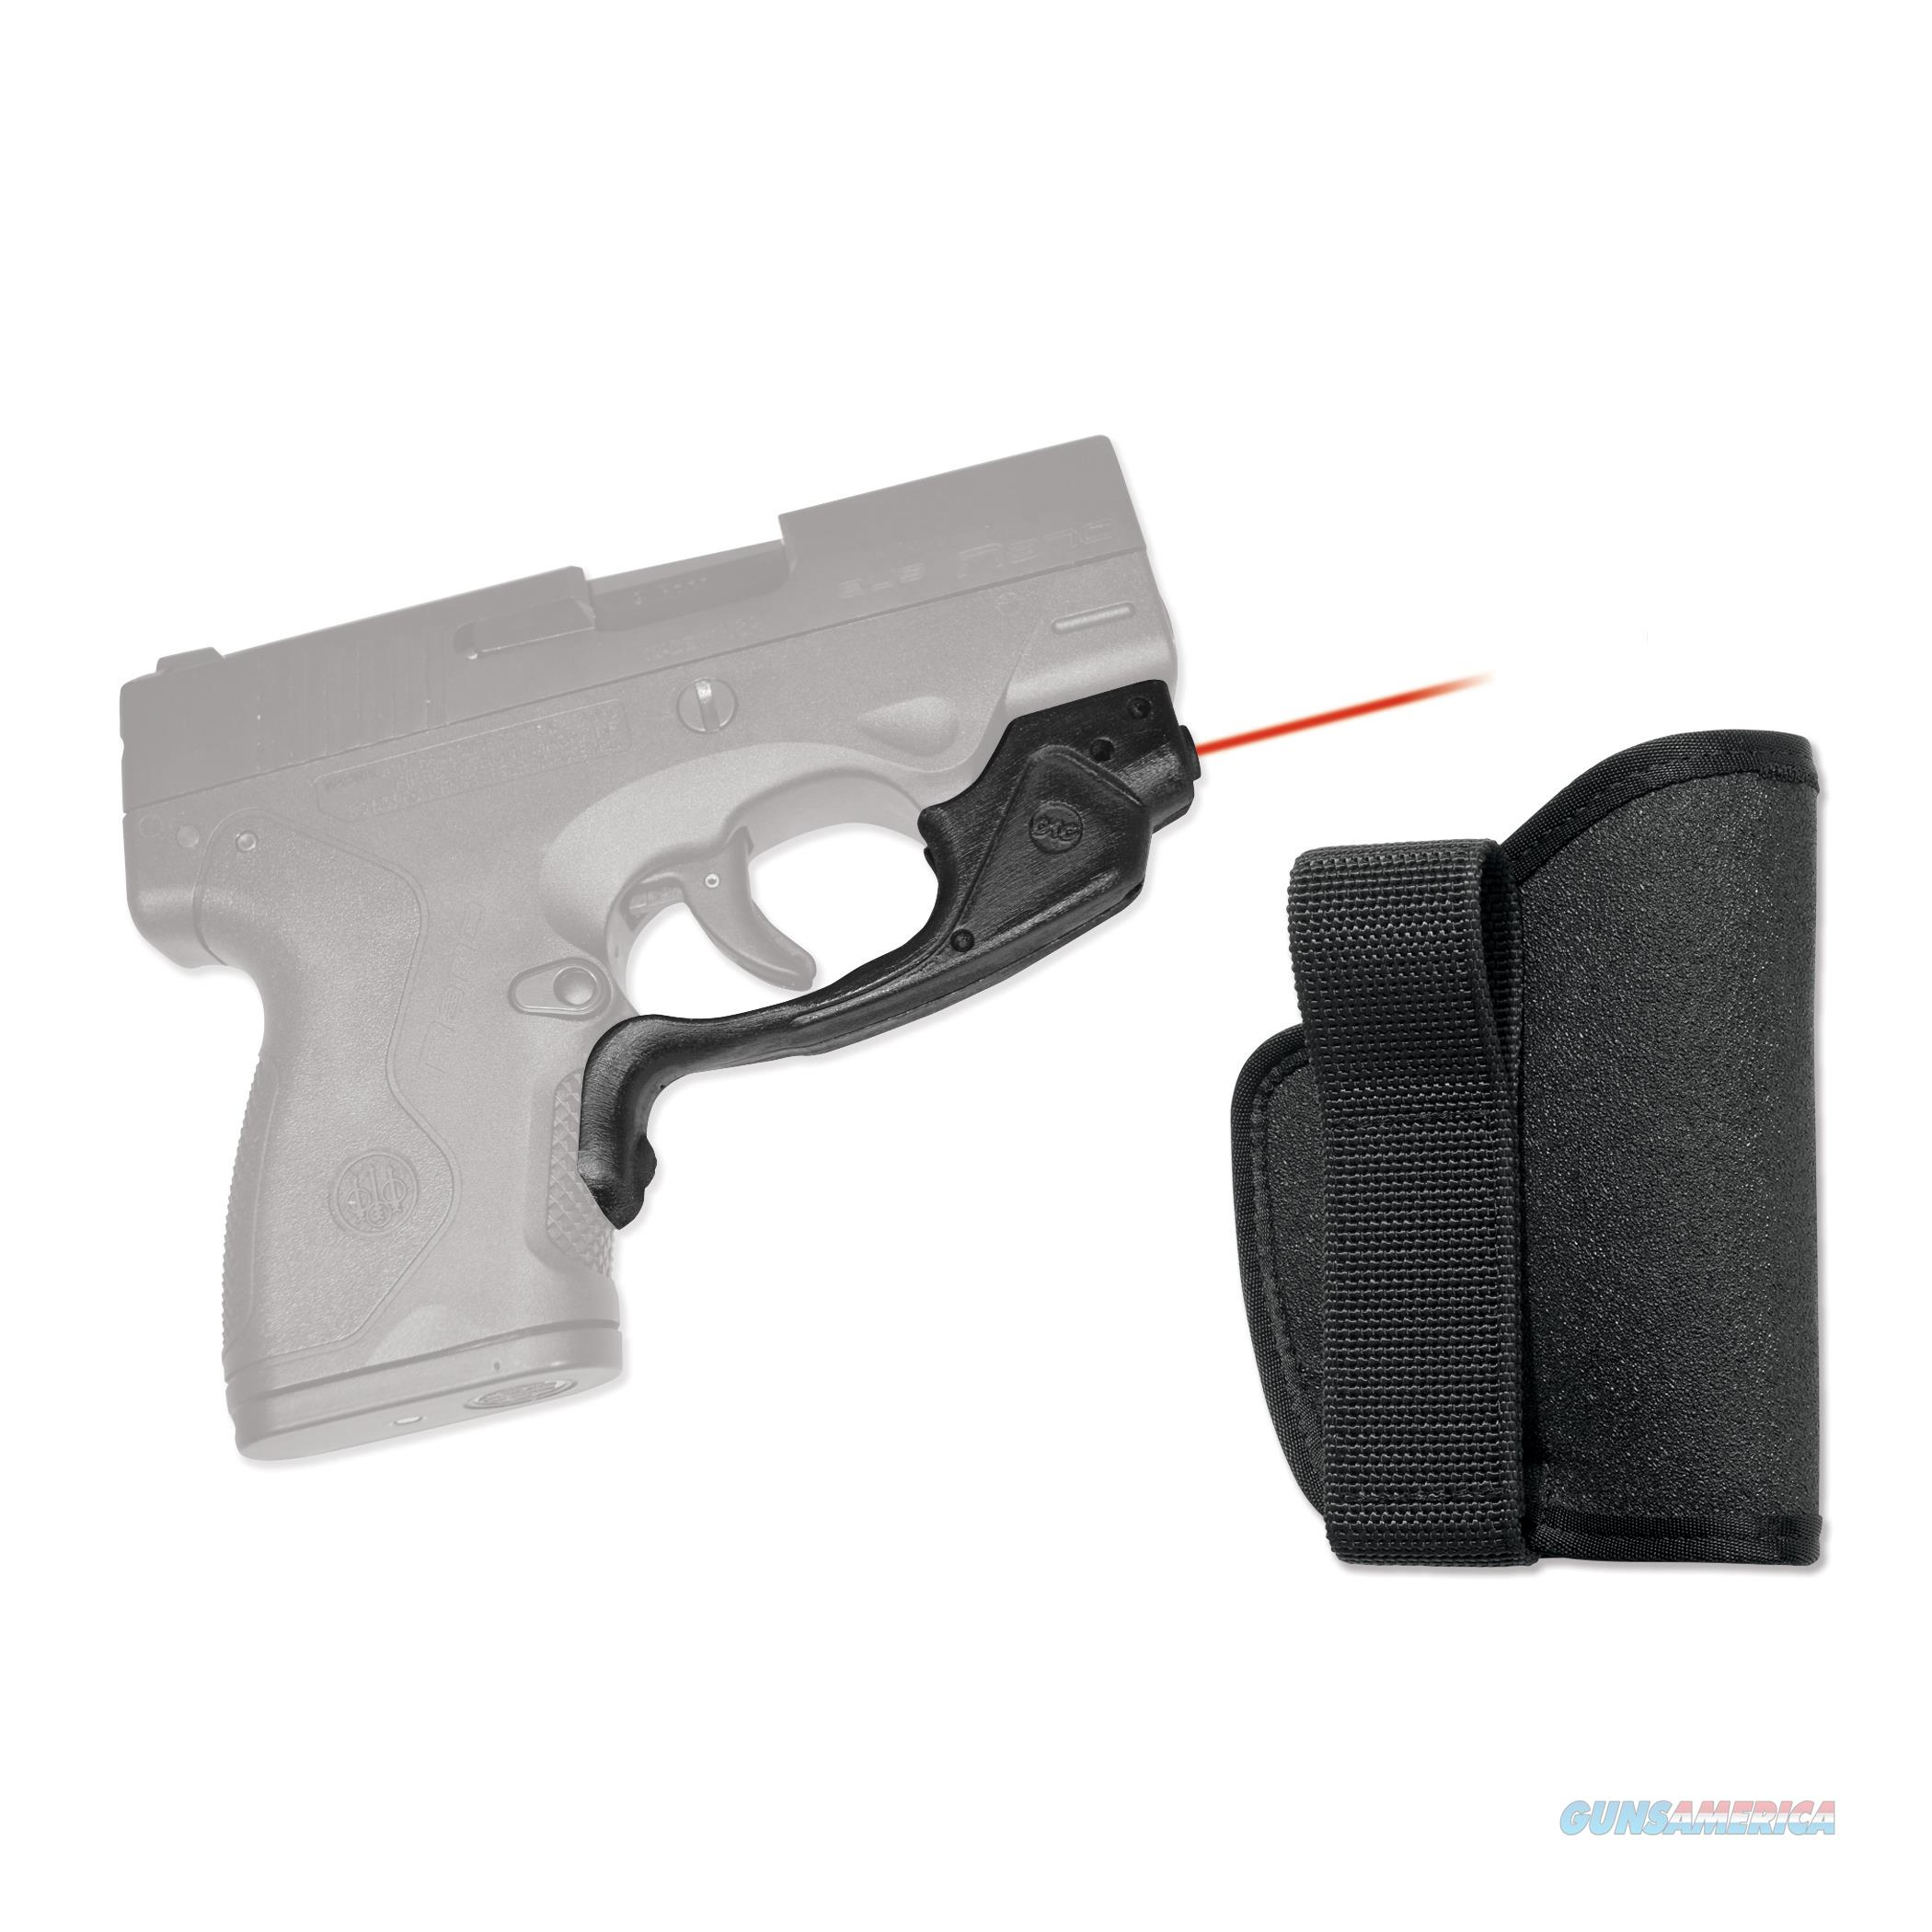 Crimson Trace Beretta LG-483-H  Non-Guns > Iron/Metal/Peep Sights